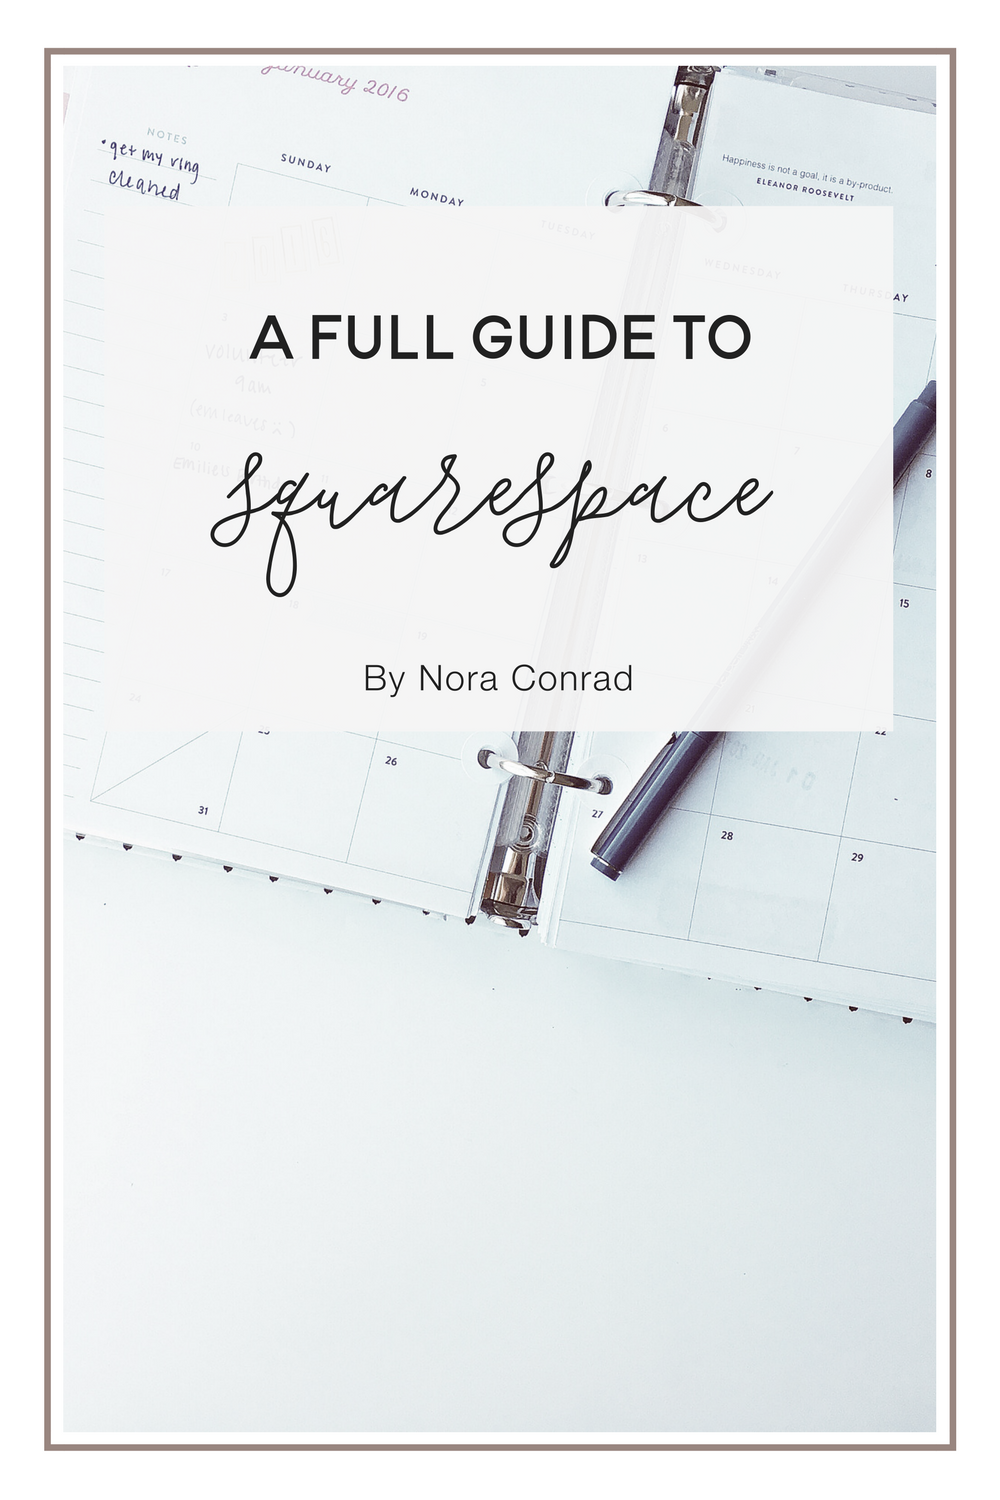 Considering switching to Squarespace? Or want to learn more about Squarespace SEO & Squarespace Design? This is a full guide that takes you through all the Squarespace basics. She also has a Wordpress version of this post! PLUS get a free printable - Squarespace Menu Guide